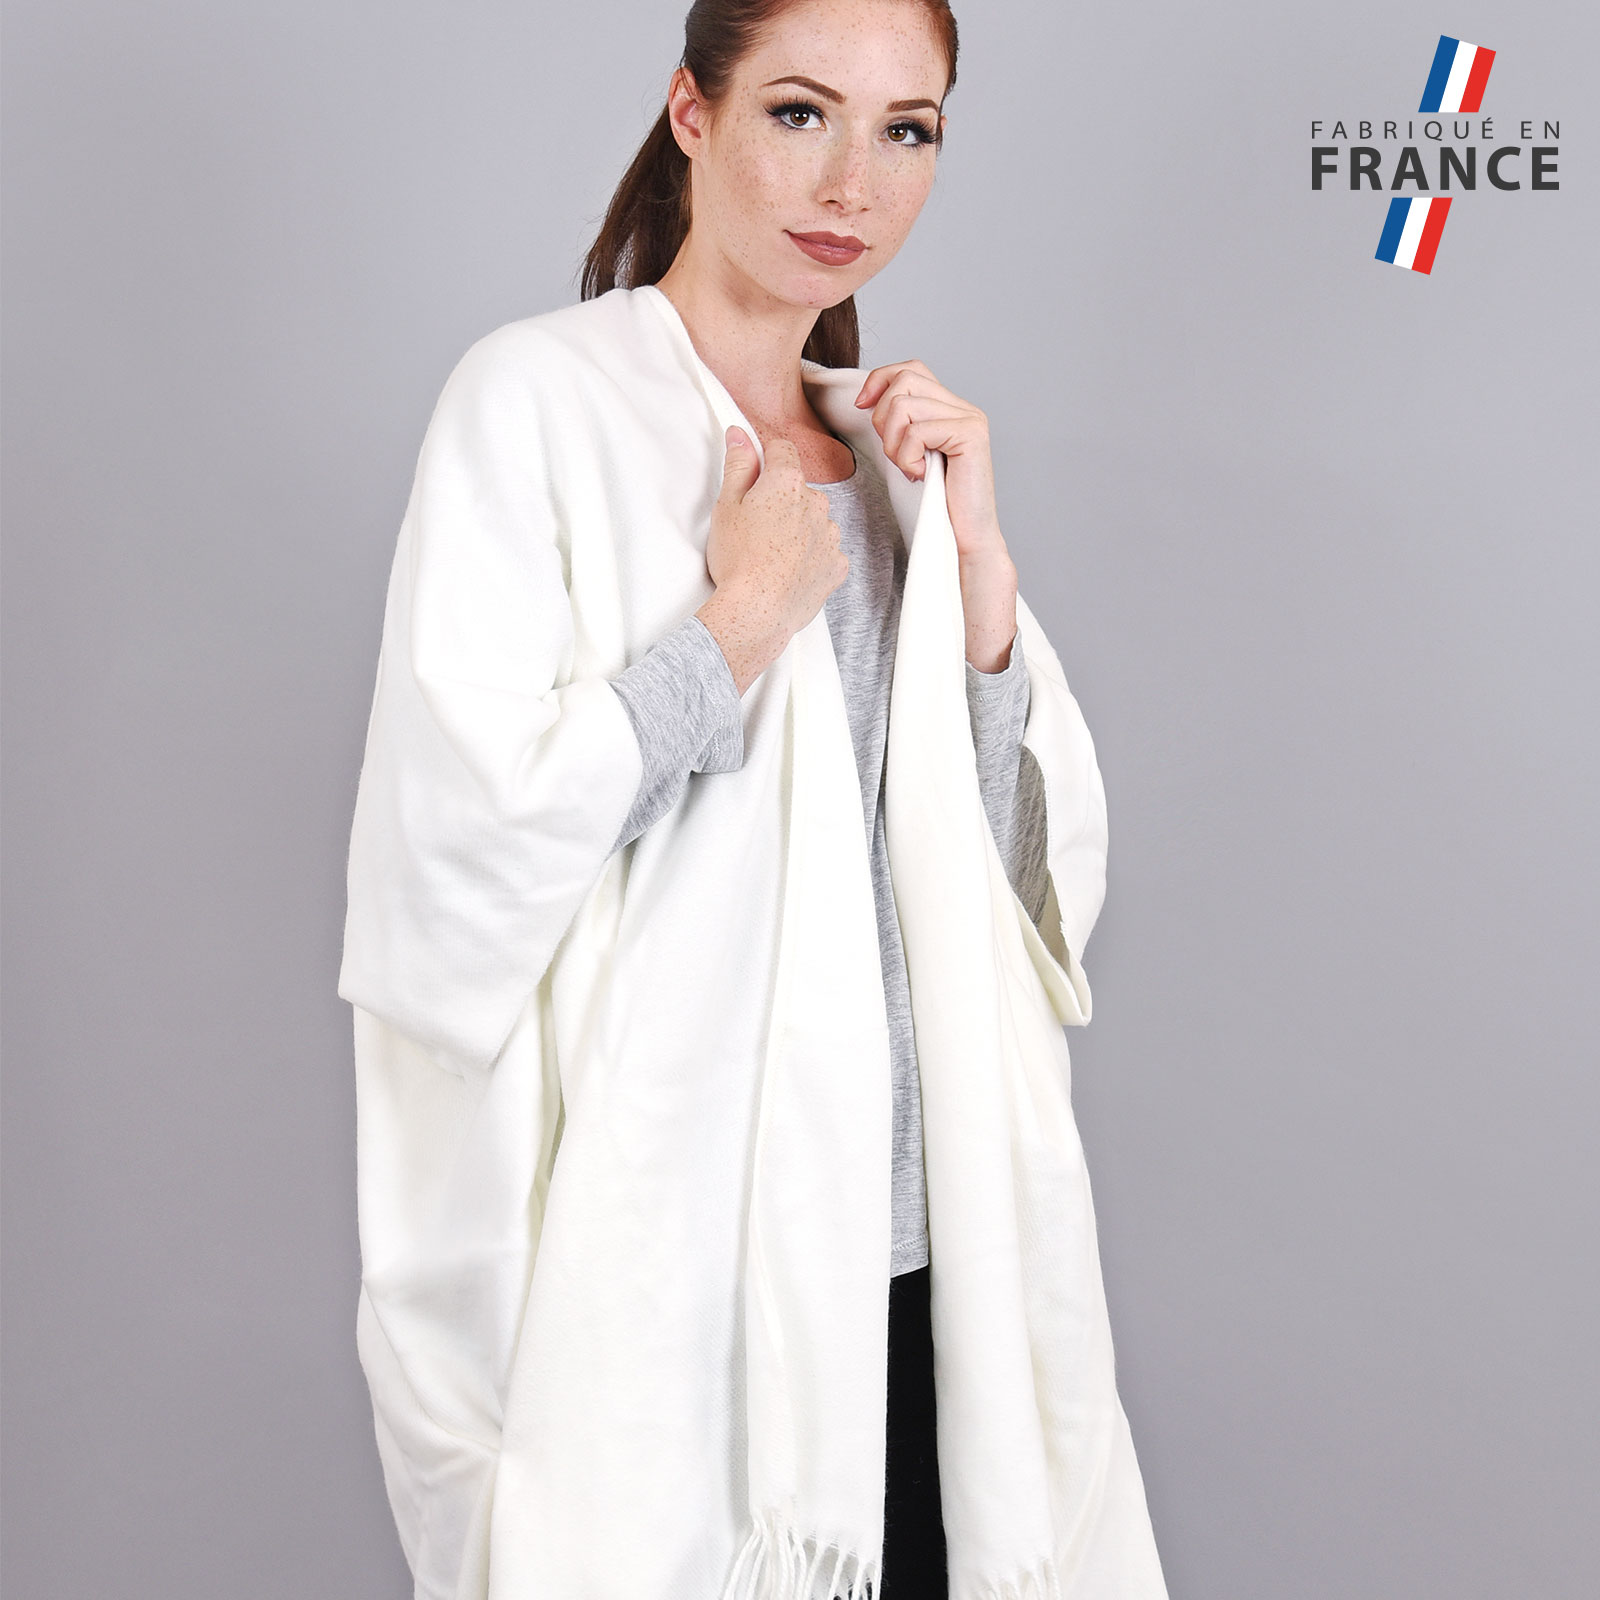 AT-03986-VF16-2-LB_FR-poncho-femme-hiver-larges-poches